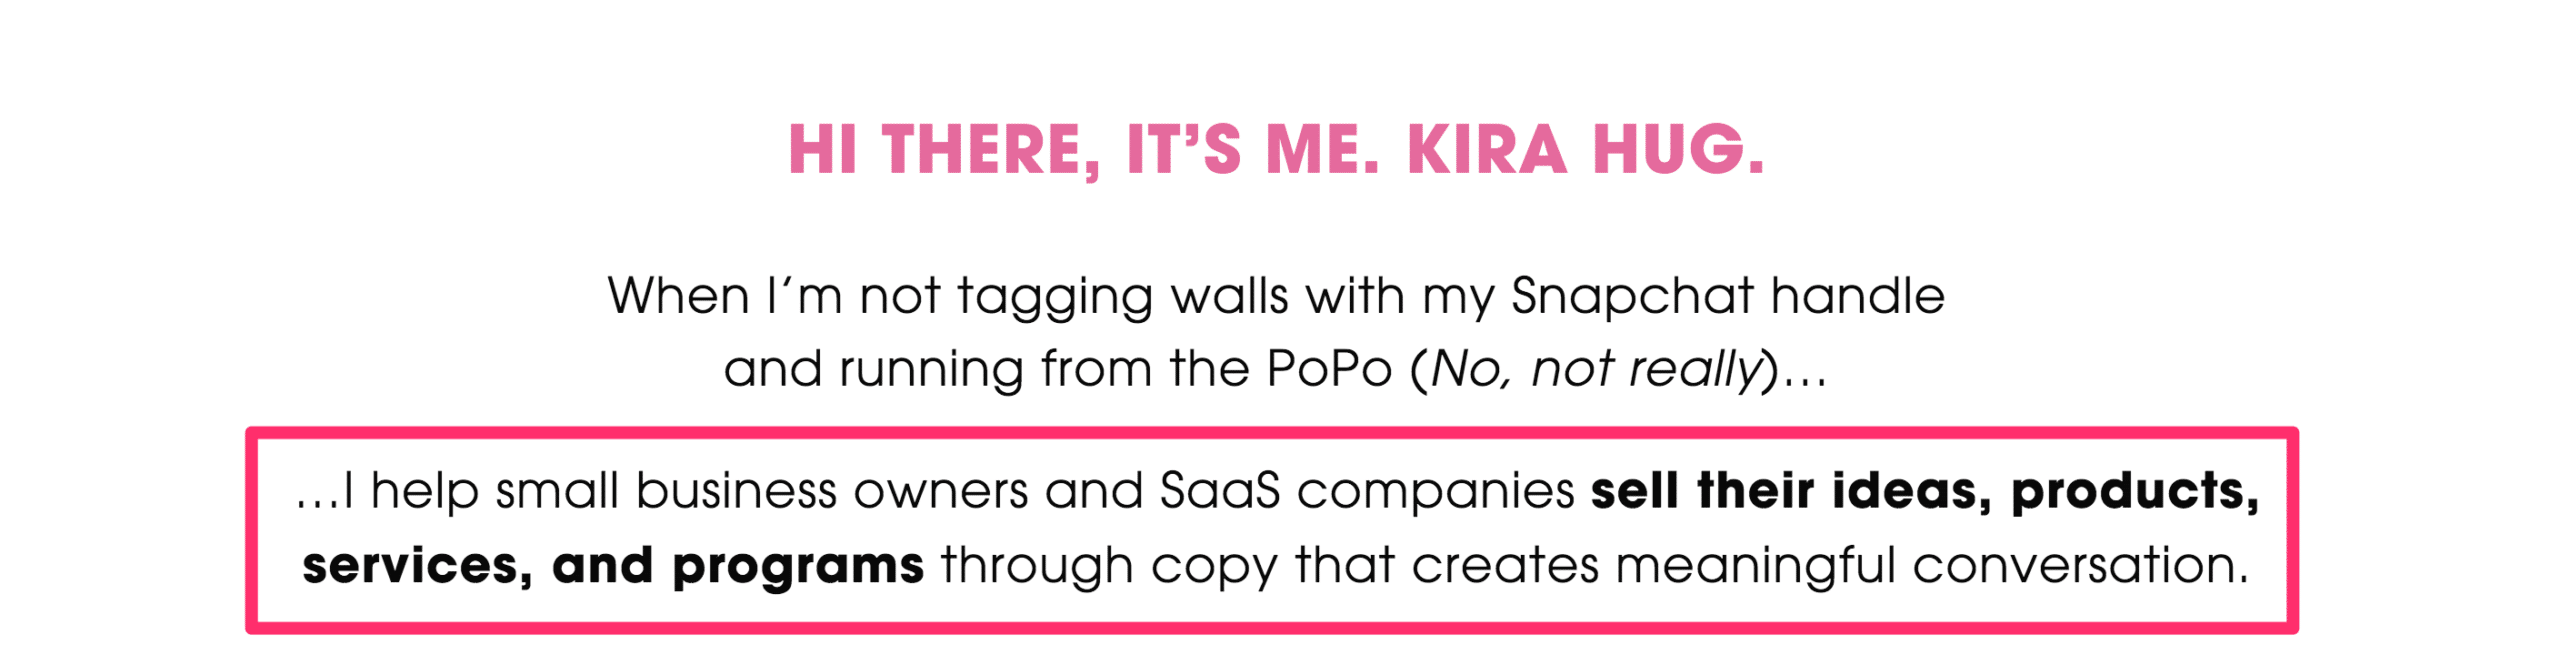 freelance copywriter example from conversion copywriter kira hug's about page